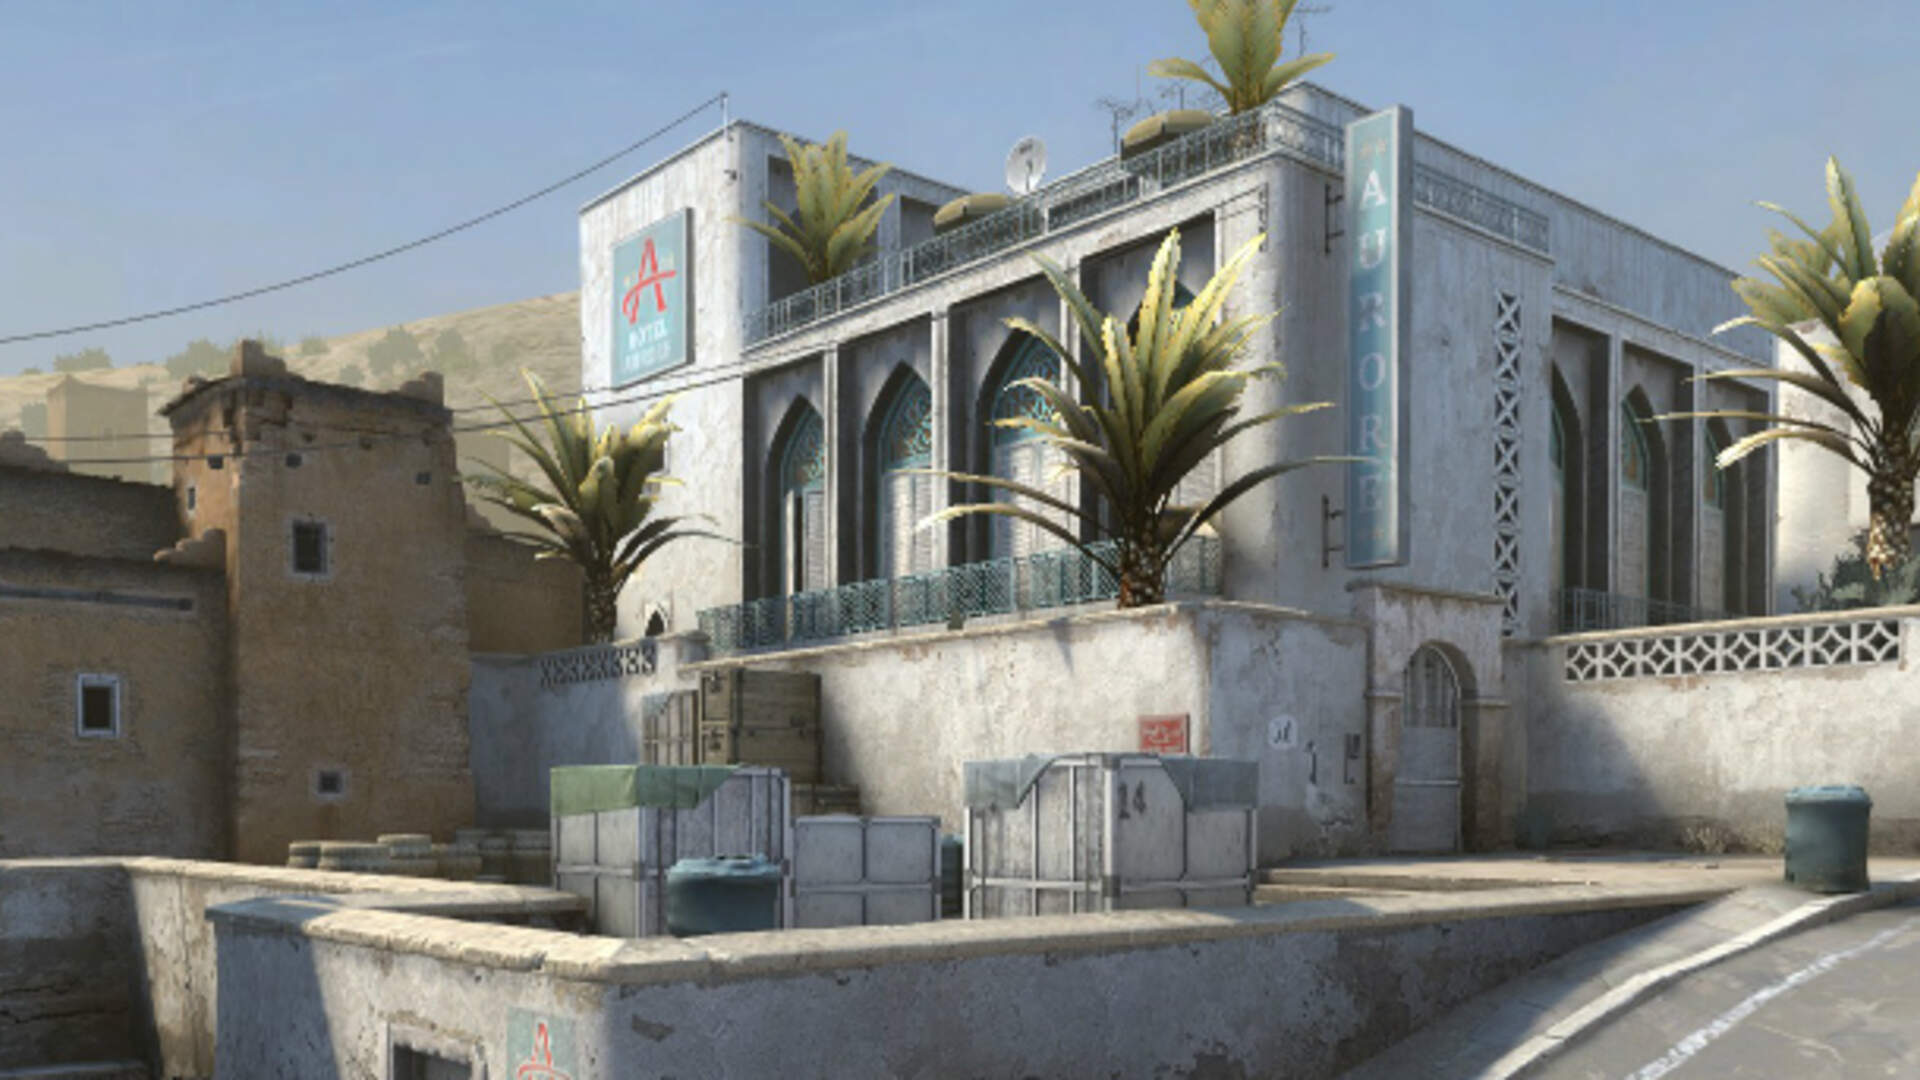 Counter-Strike: GO Revamps A Clic With Dust 2 Map Changes ... on dust bowl, counter strike de dust map, aztec map, the dust borderlands map, dust bunny, dust devil, dust storm in us map of region, italy map, dust of snow, cs go dust map, storm weather map,